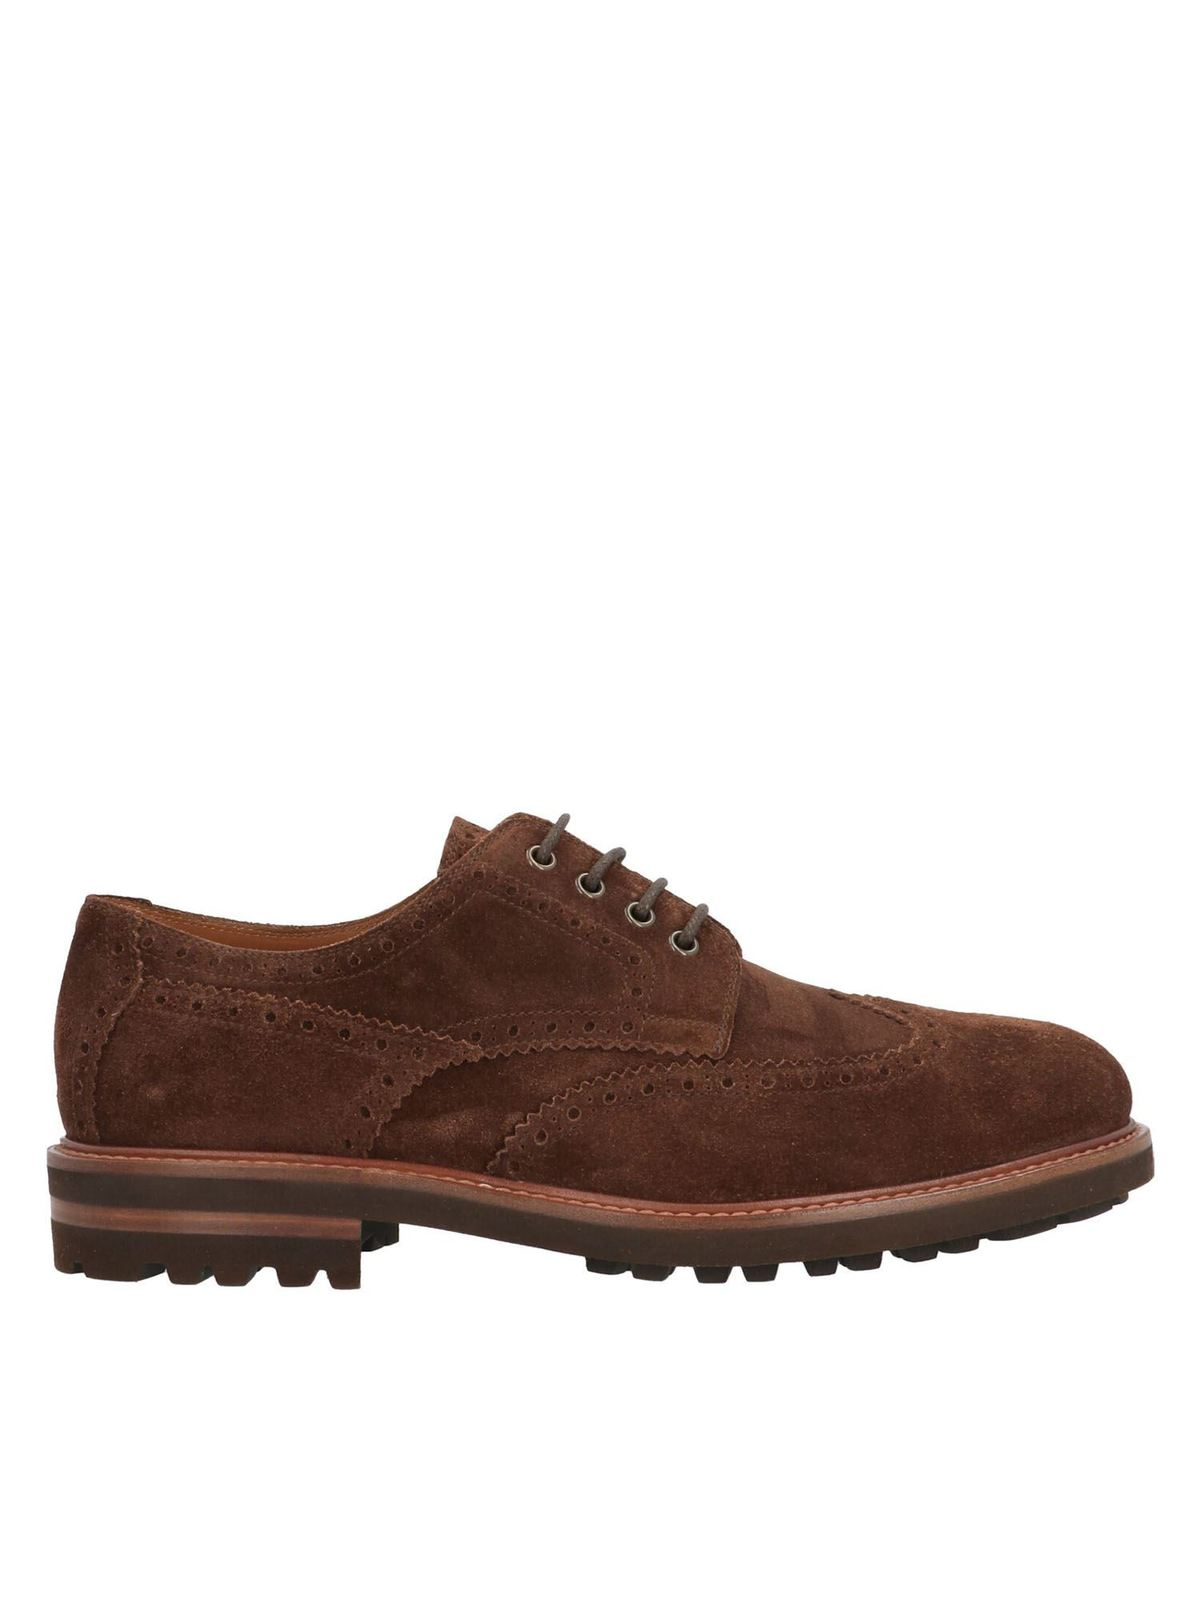 BRUNELLO CUCINELLI LONGWING BROGUE LACE-UP IN BROWN